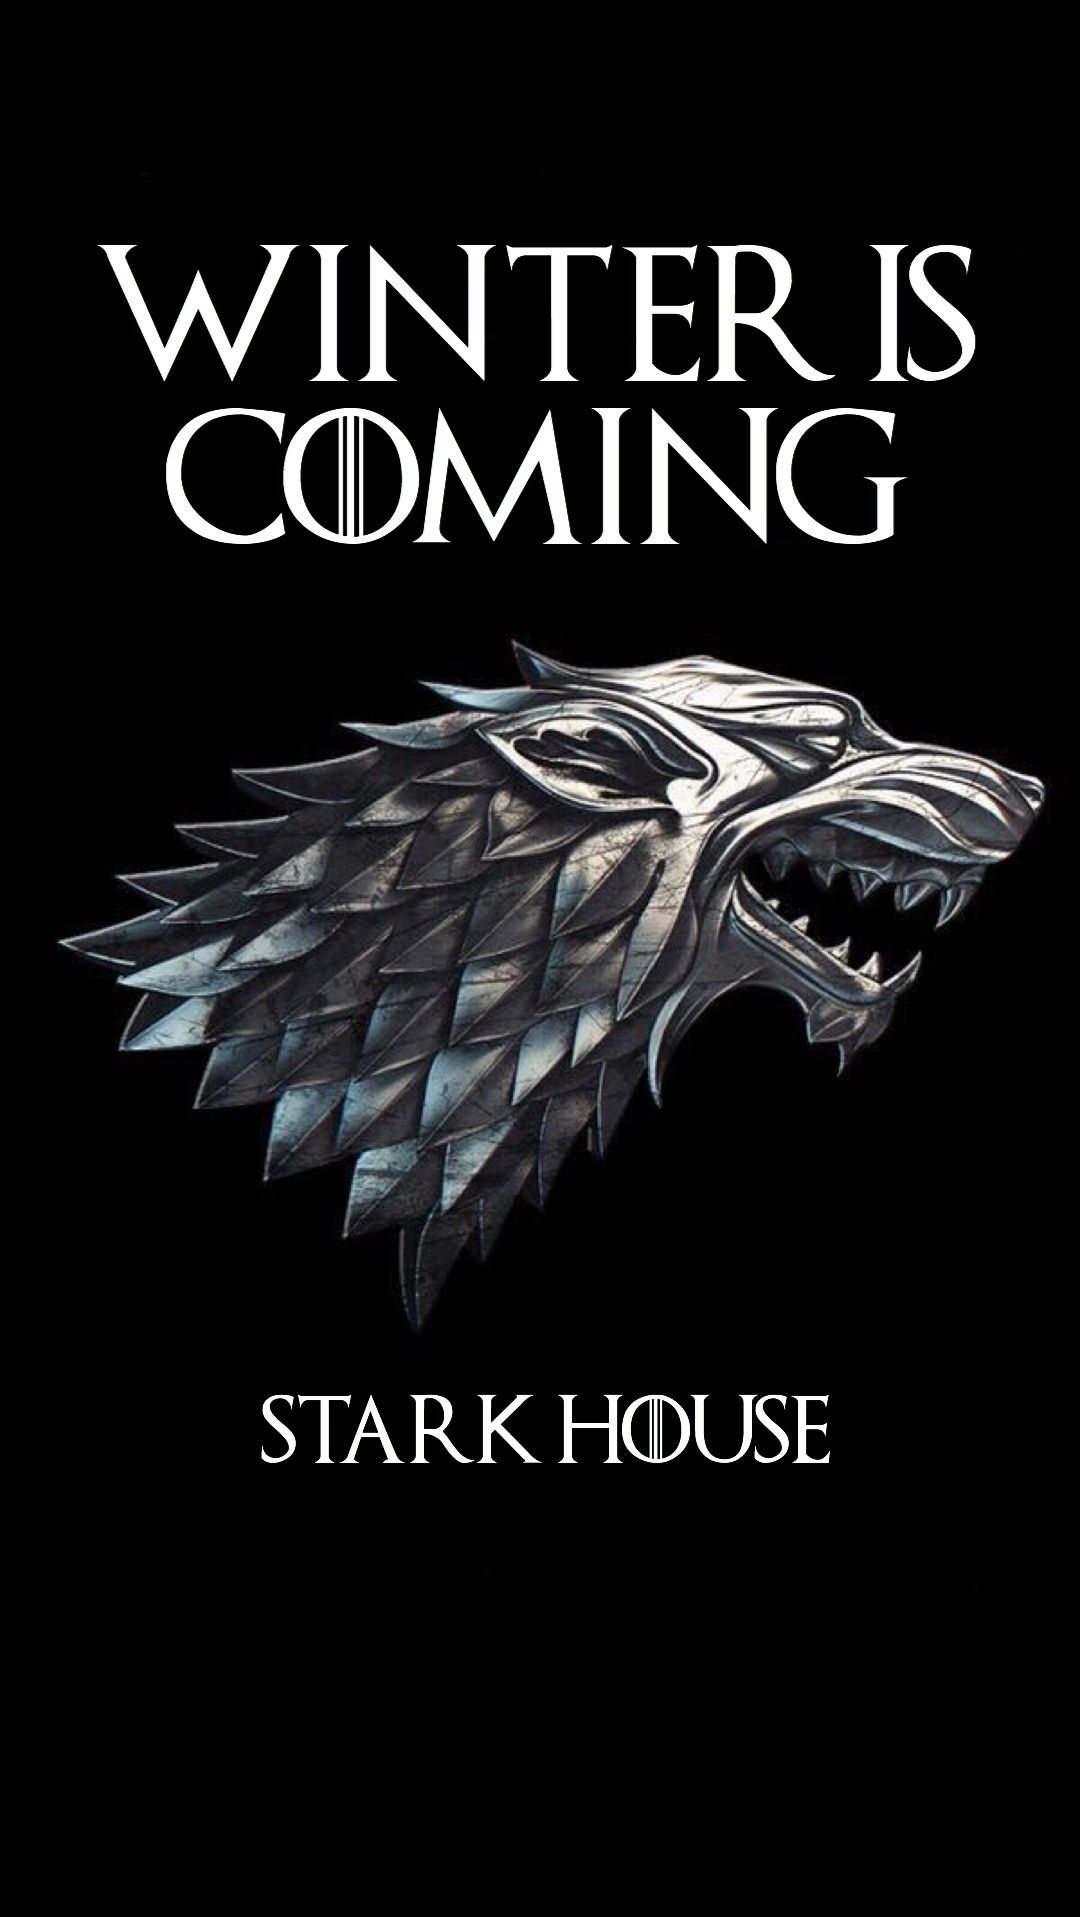 Stark House Wallpaper In 2020 Winter Is Coming Wallpaper Outdoors Tattoo Winter Is Coming Stark